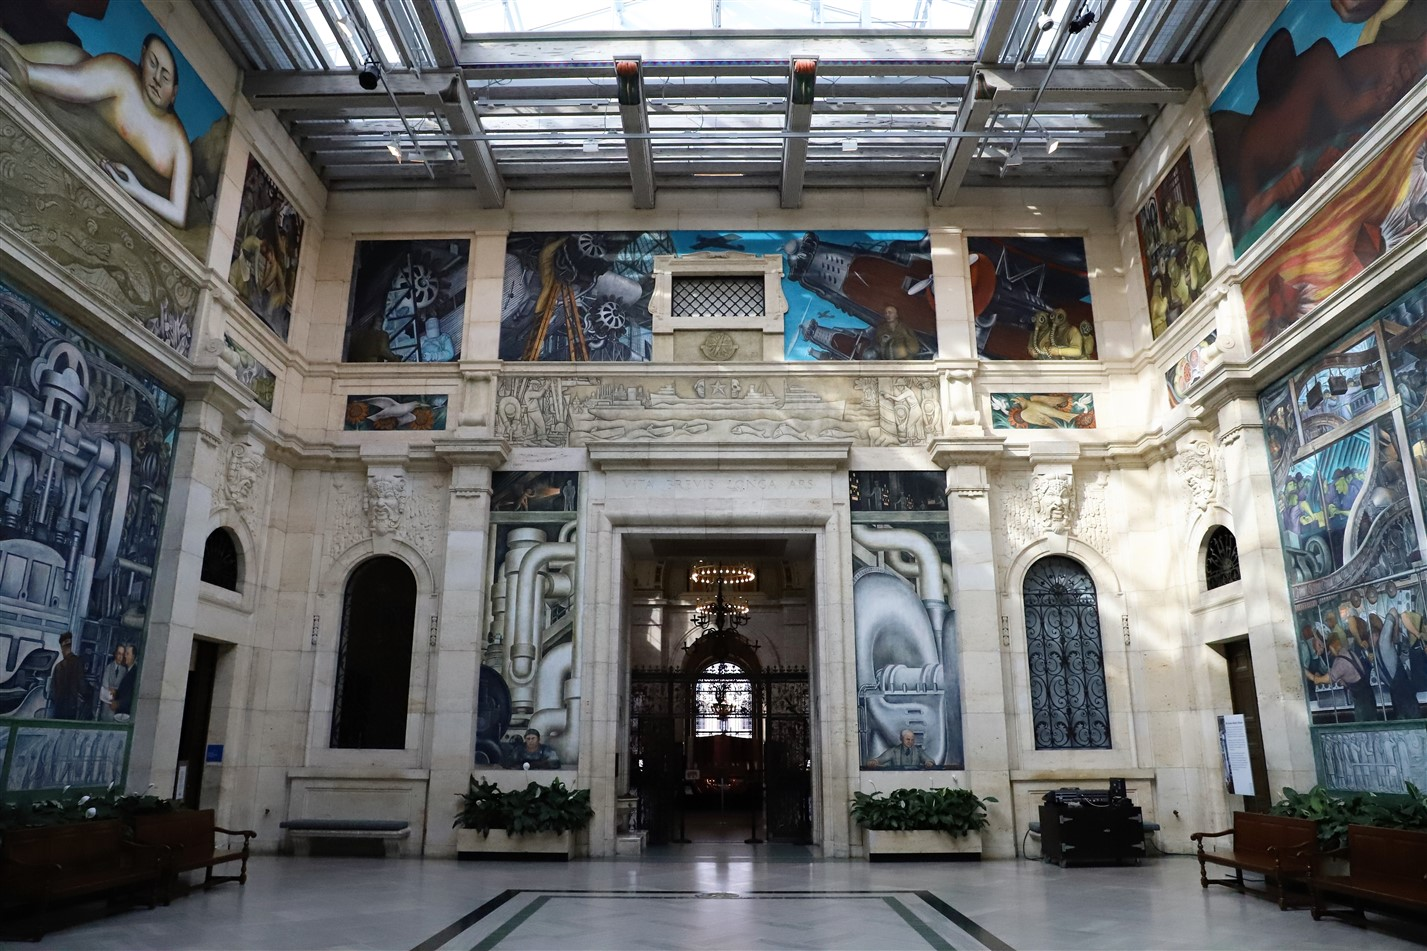 2019 04 07 71 Detroit Institute of Art